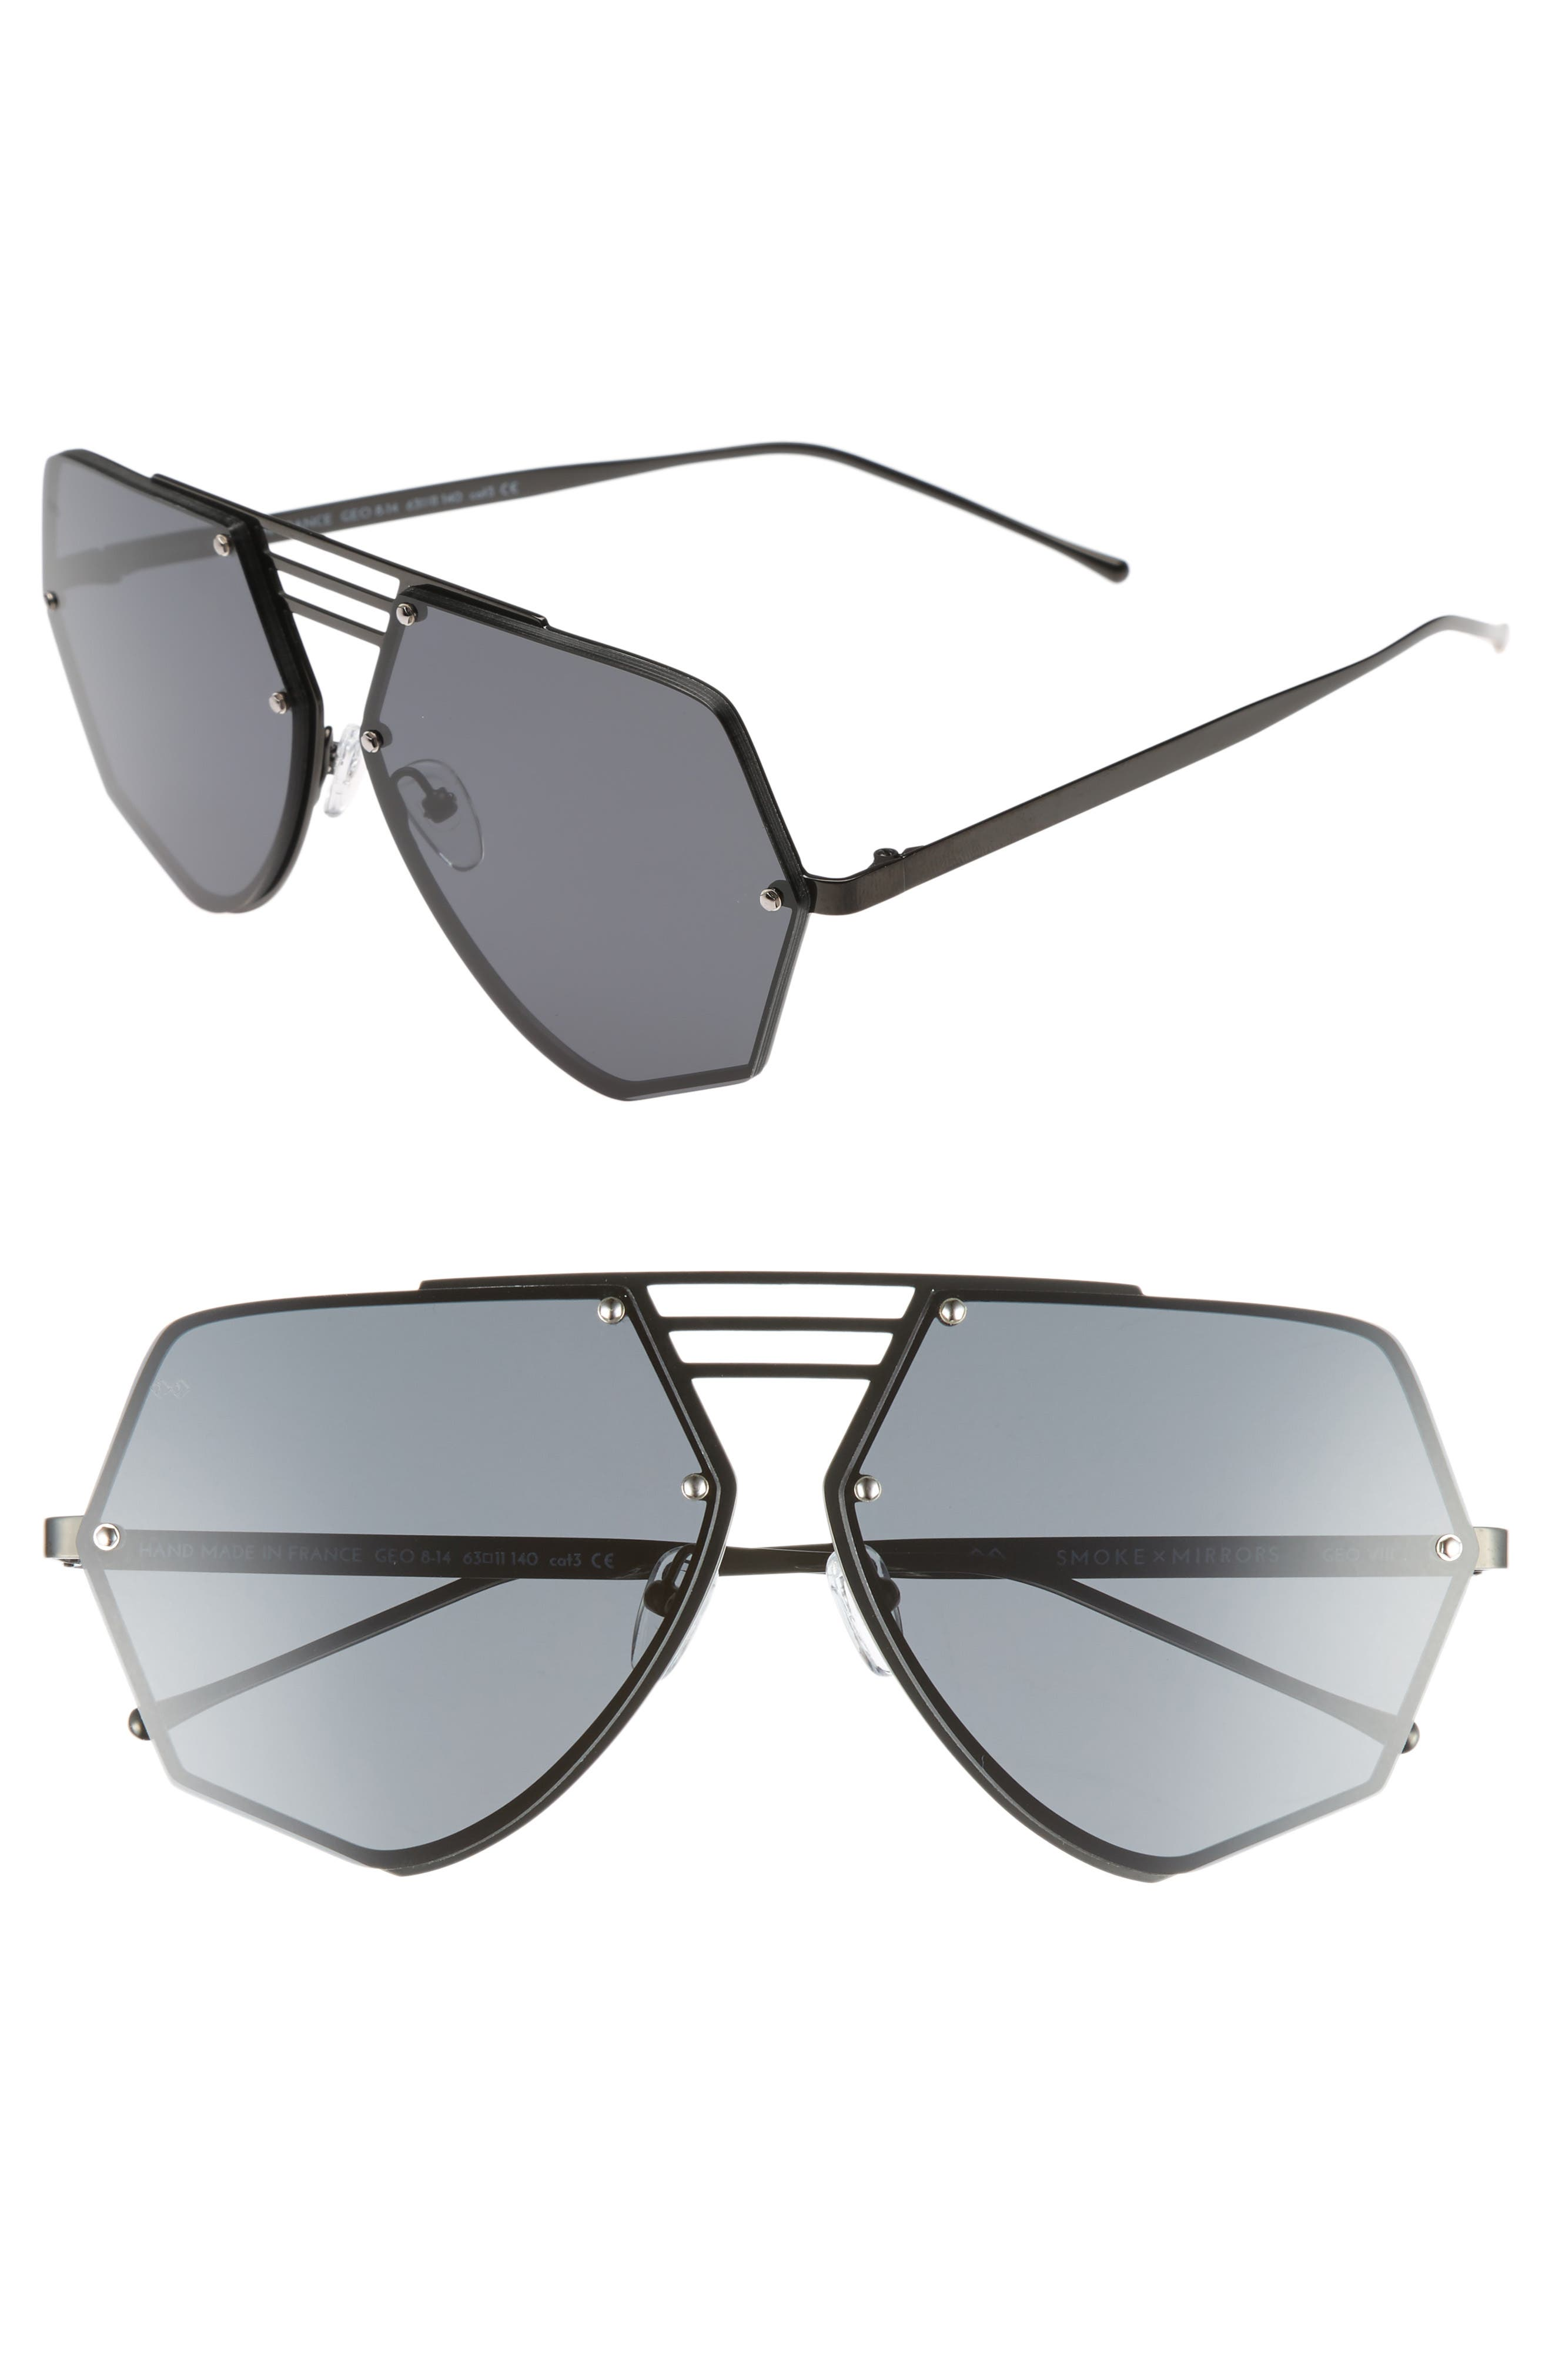 Geo VIII 63mm Sunglasses,                         Main,                         color, DARK GUNMETAL/ DARK GREY